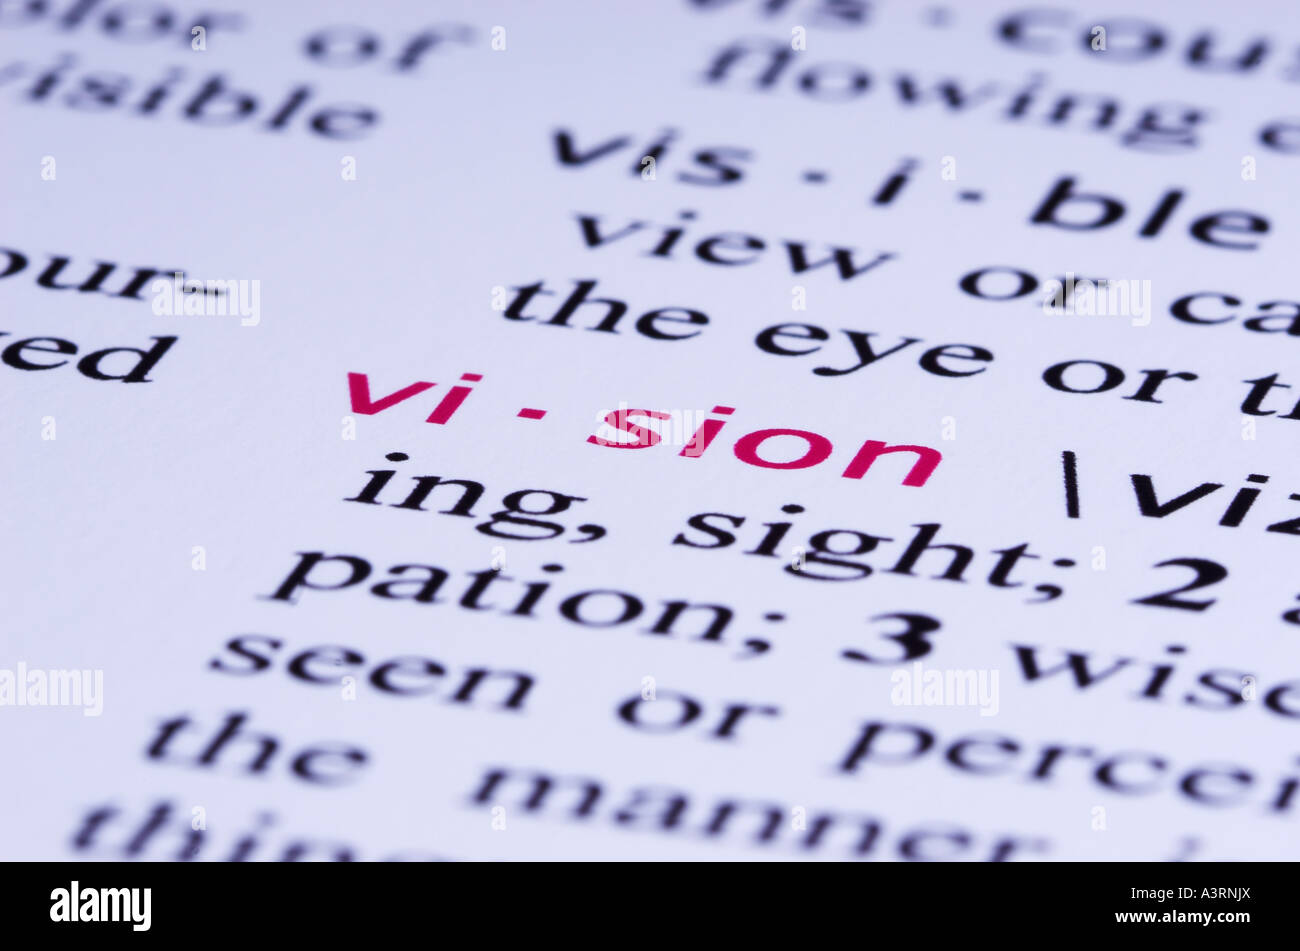 The Definition For Word VISION Is Highlighted In A Dictionary. The  Dictionary Is Fictitious, Made Up By The Photographer